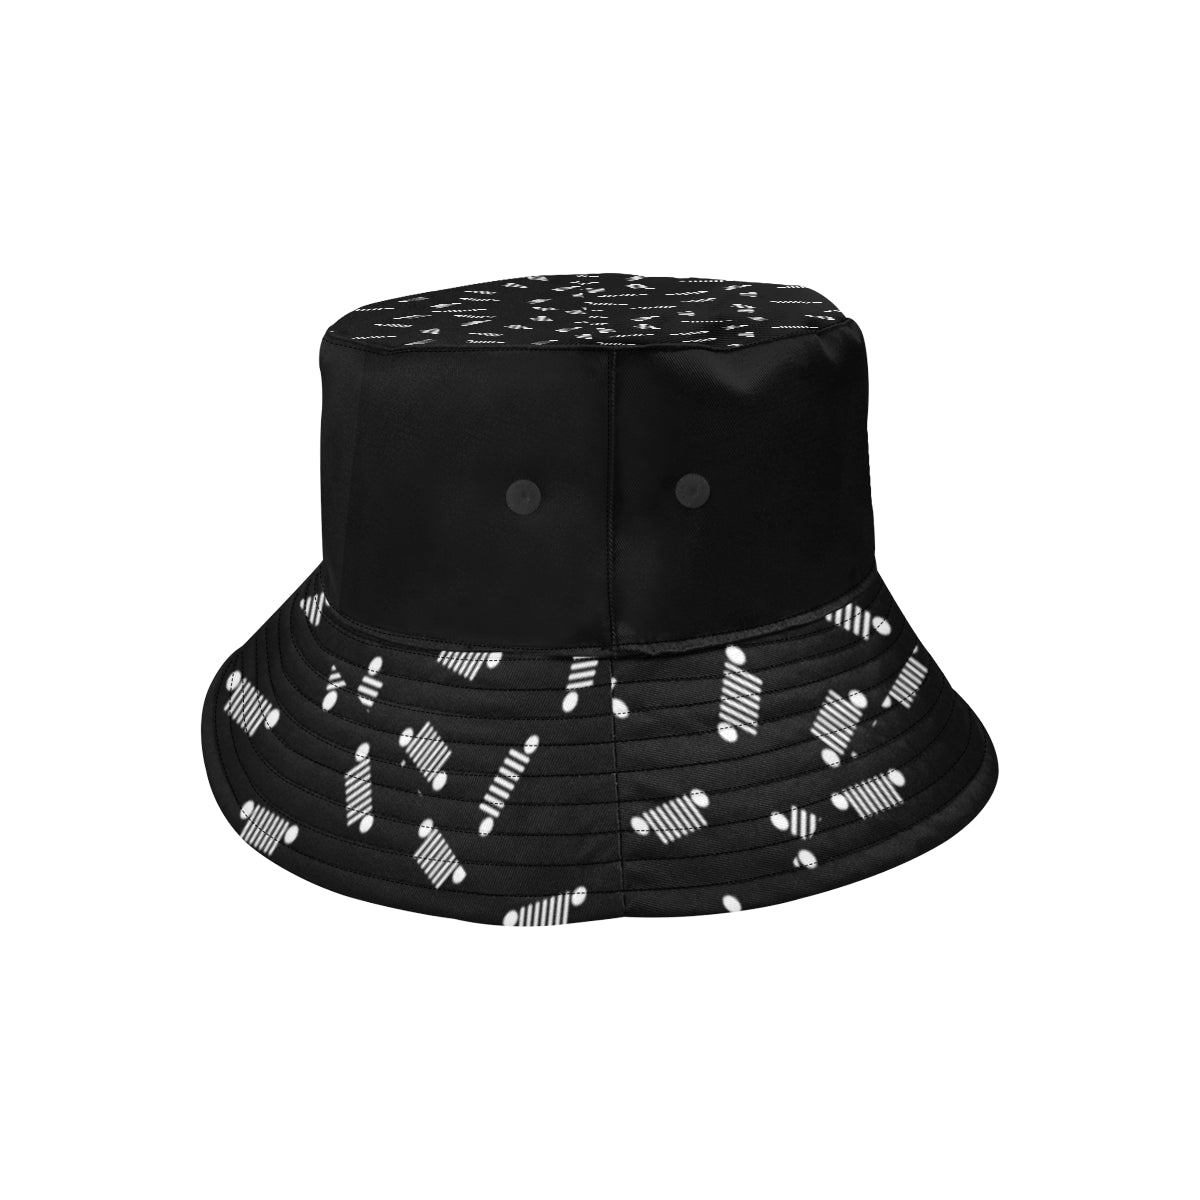 Kitty jeep bucket hats